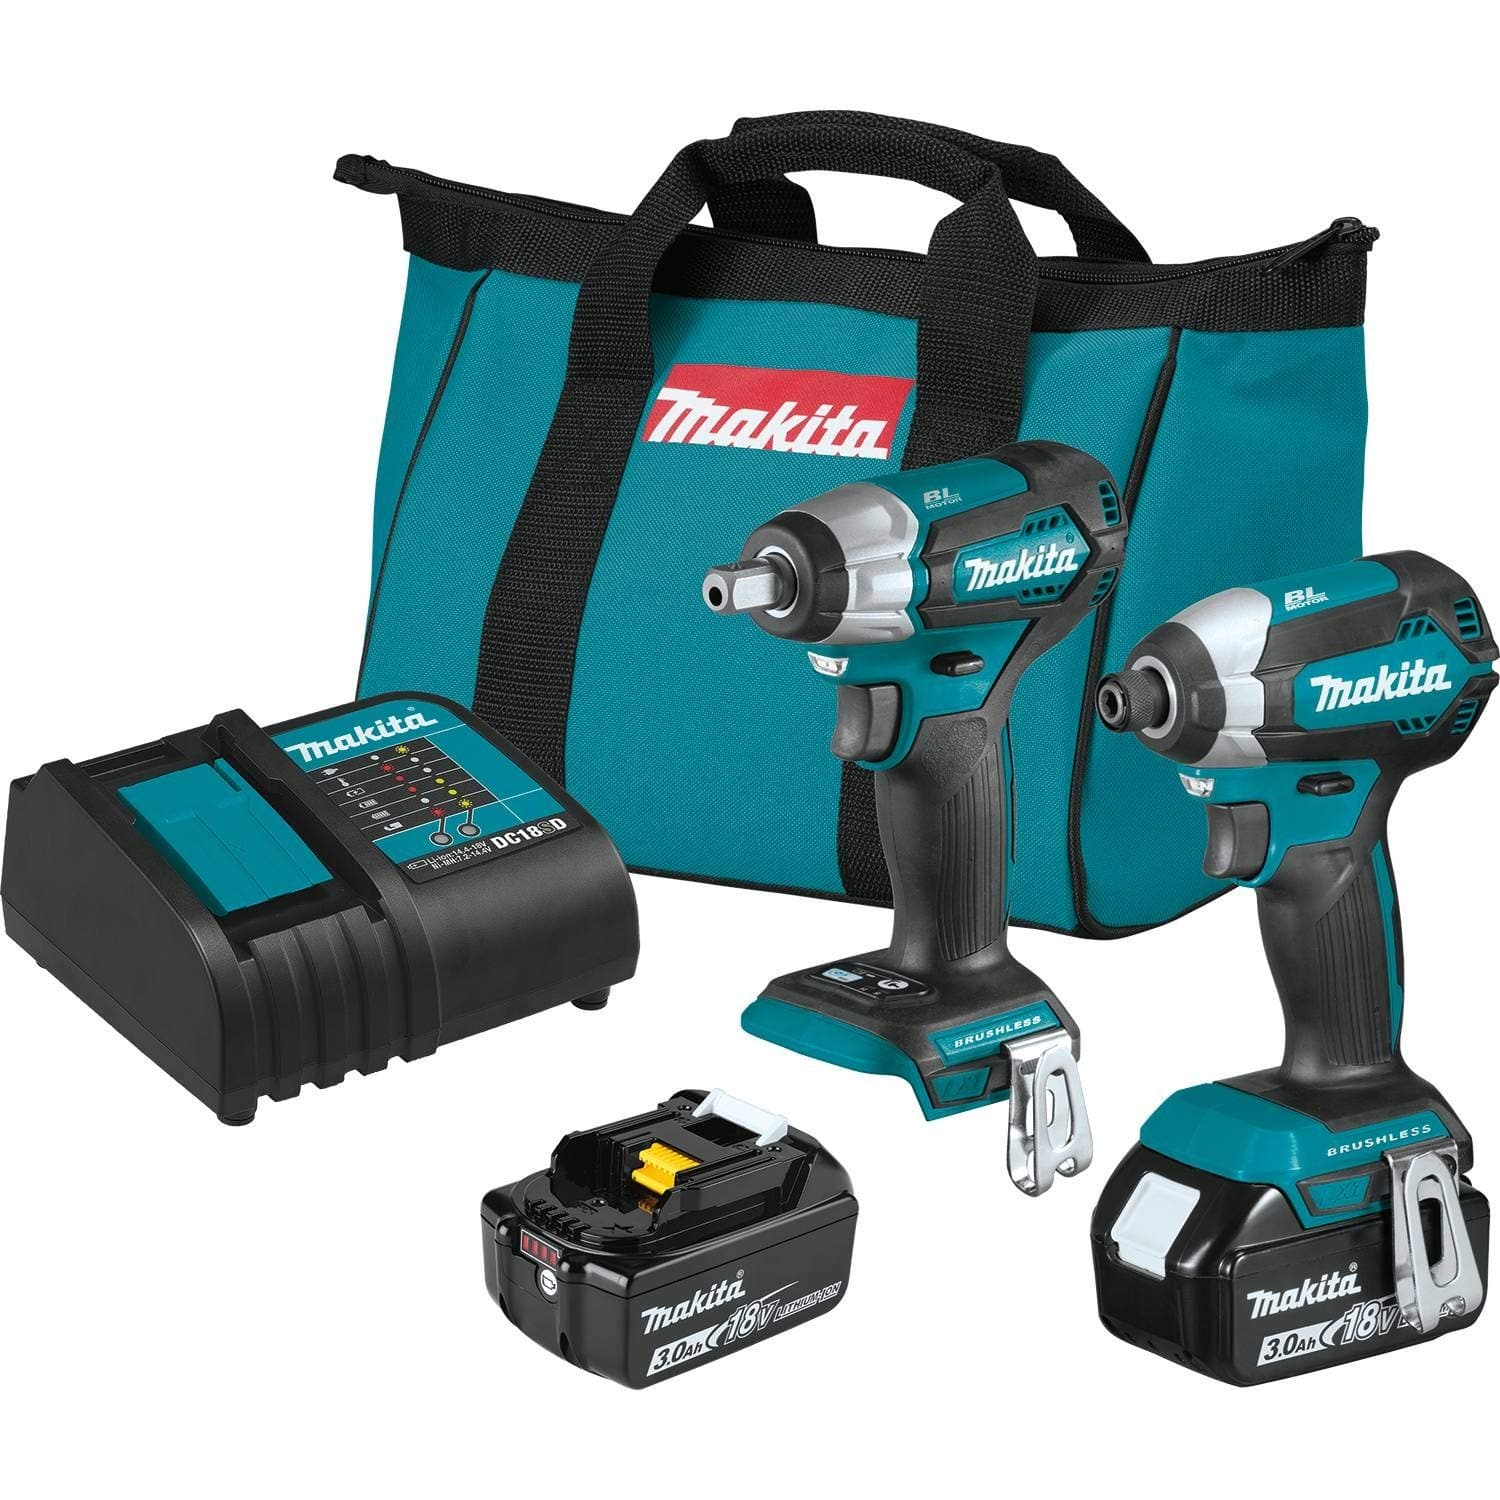 18 Volt Makita LXT Lithium-Ion Brushless 2-Piece Combo Kit (Impact Wrench & Driver w/ two 3.0Ah Batteries) $149 + free shipping